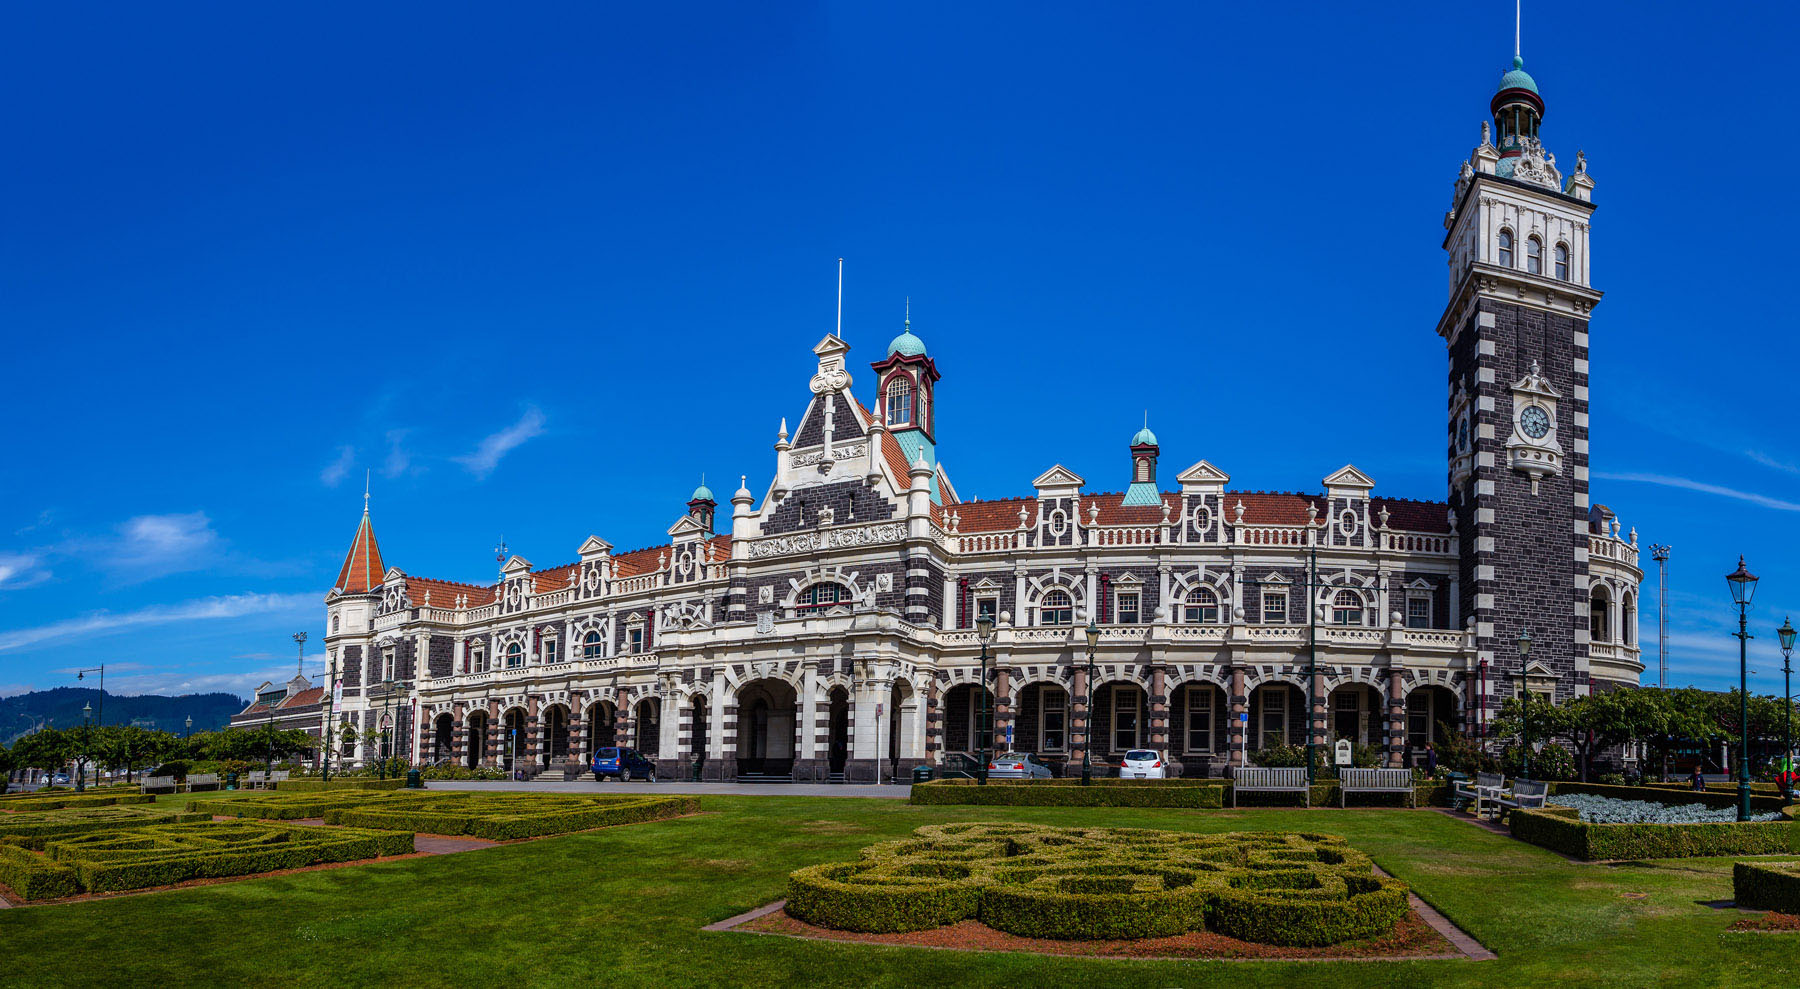 Dunedin, New Zealand is known for great architecture.